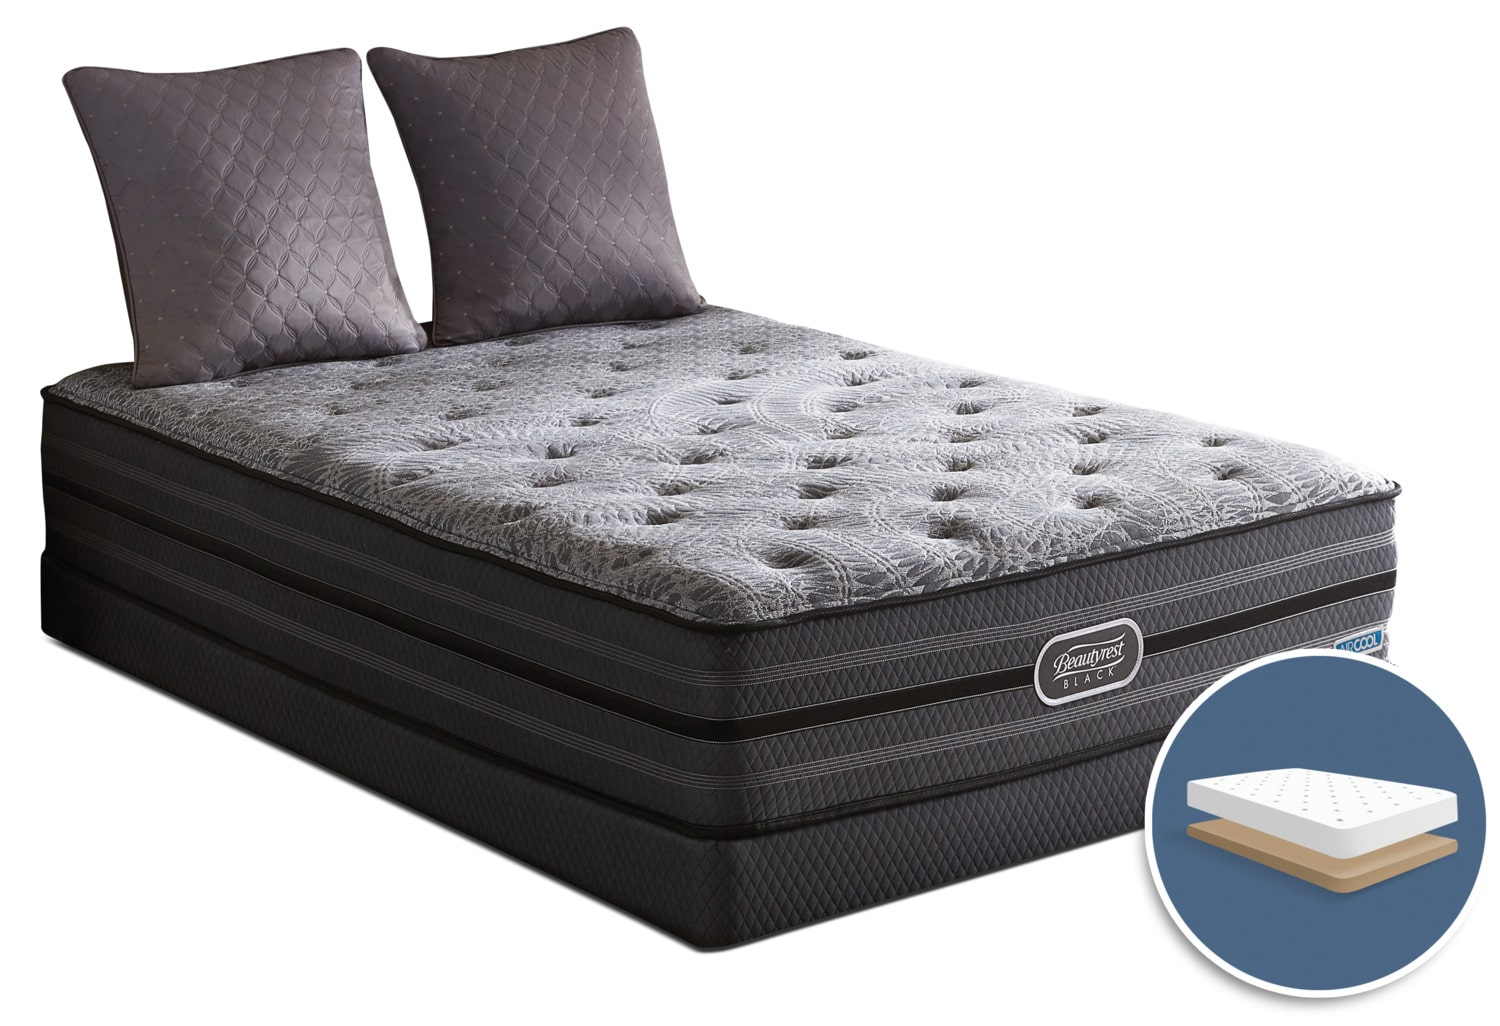 Beautyrest Black Radiance Tight-Top Luxury Firm Low-Profile King Mattress Set